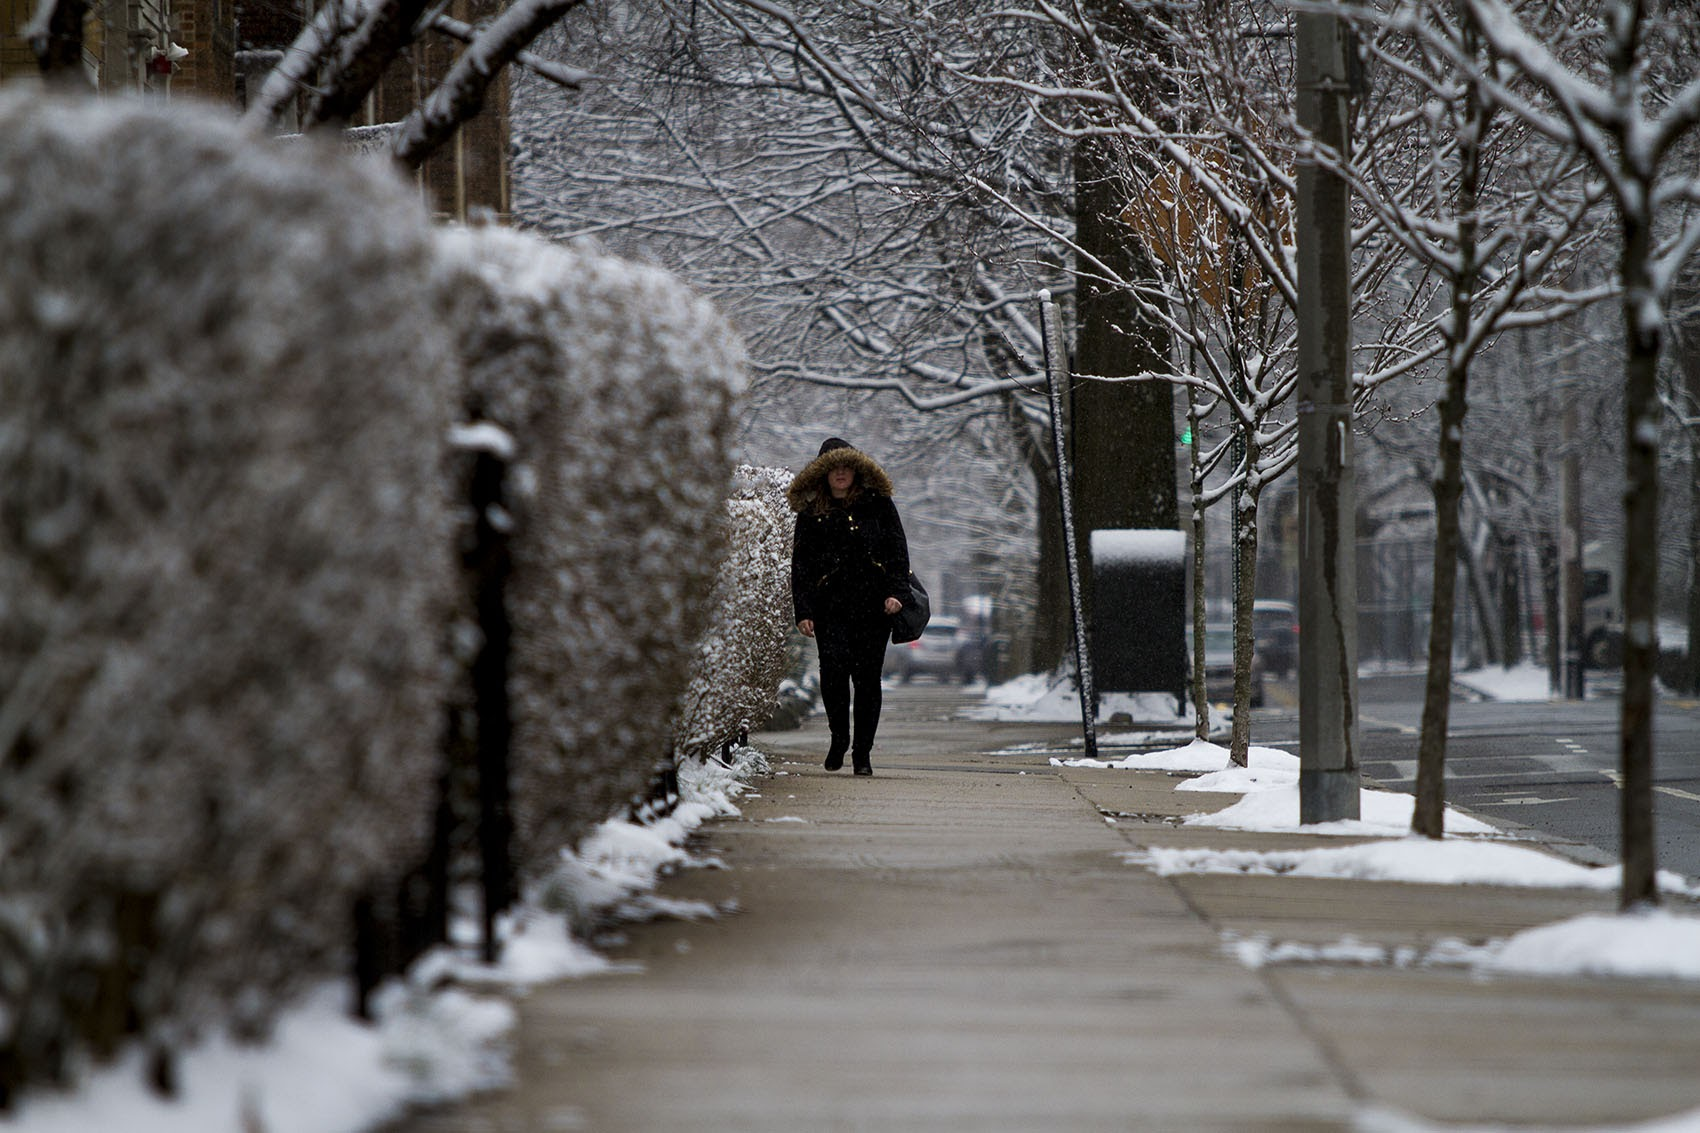 Winter Weather Forecast What To Expect Around Boston WBUR News - St paul weather forecast 10 day